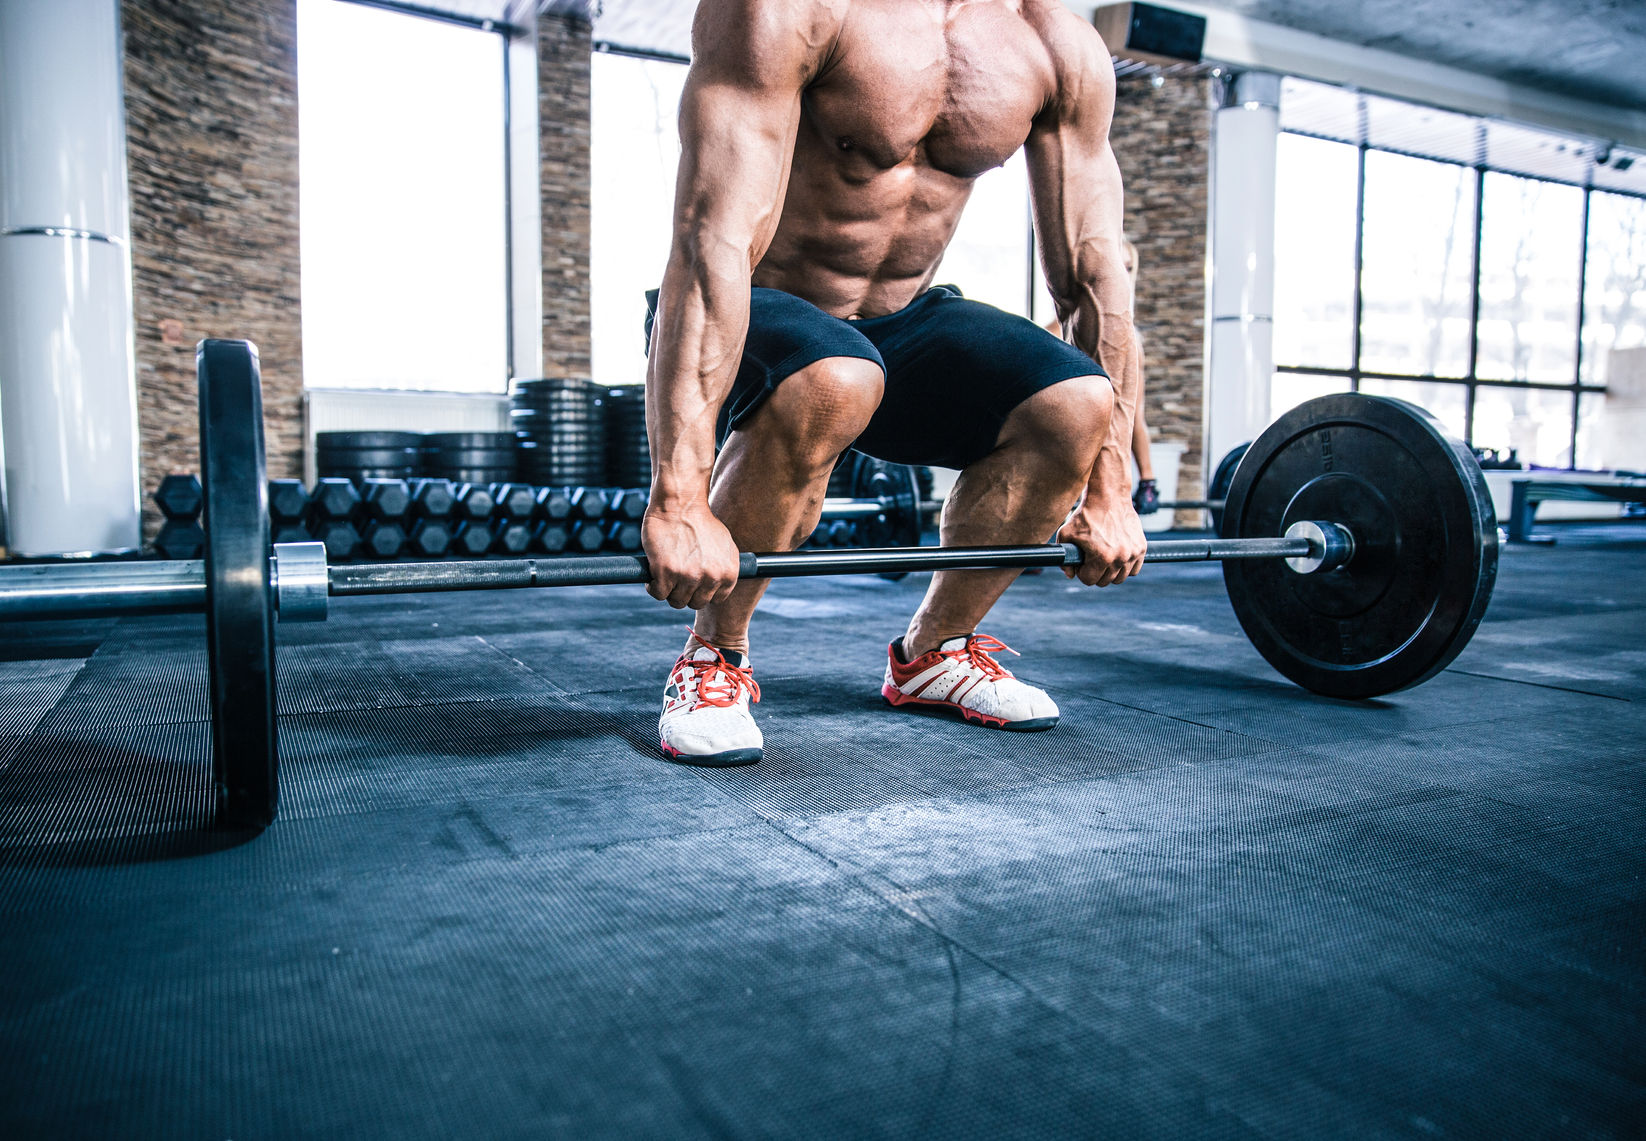 38794415 - closeup portrait of a muscular man workout with barbell at gym